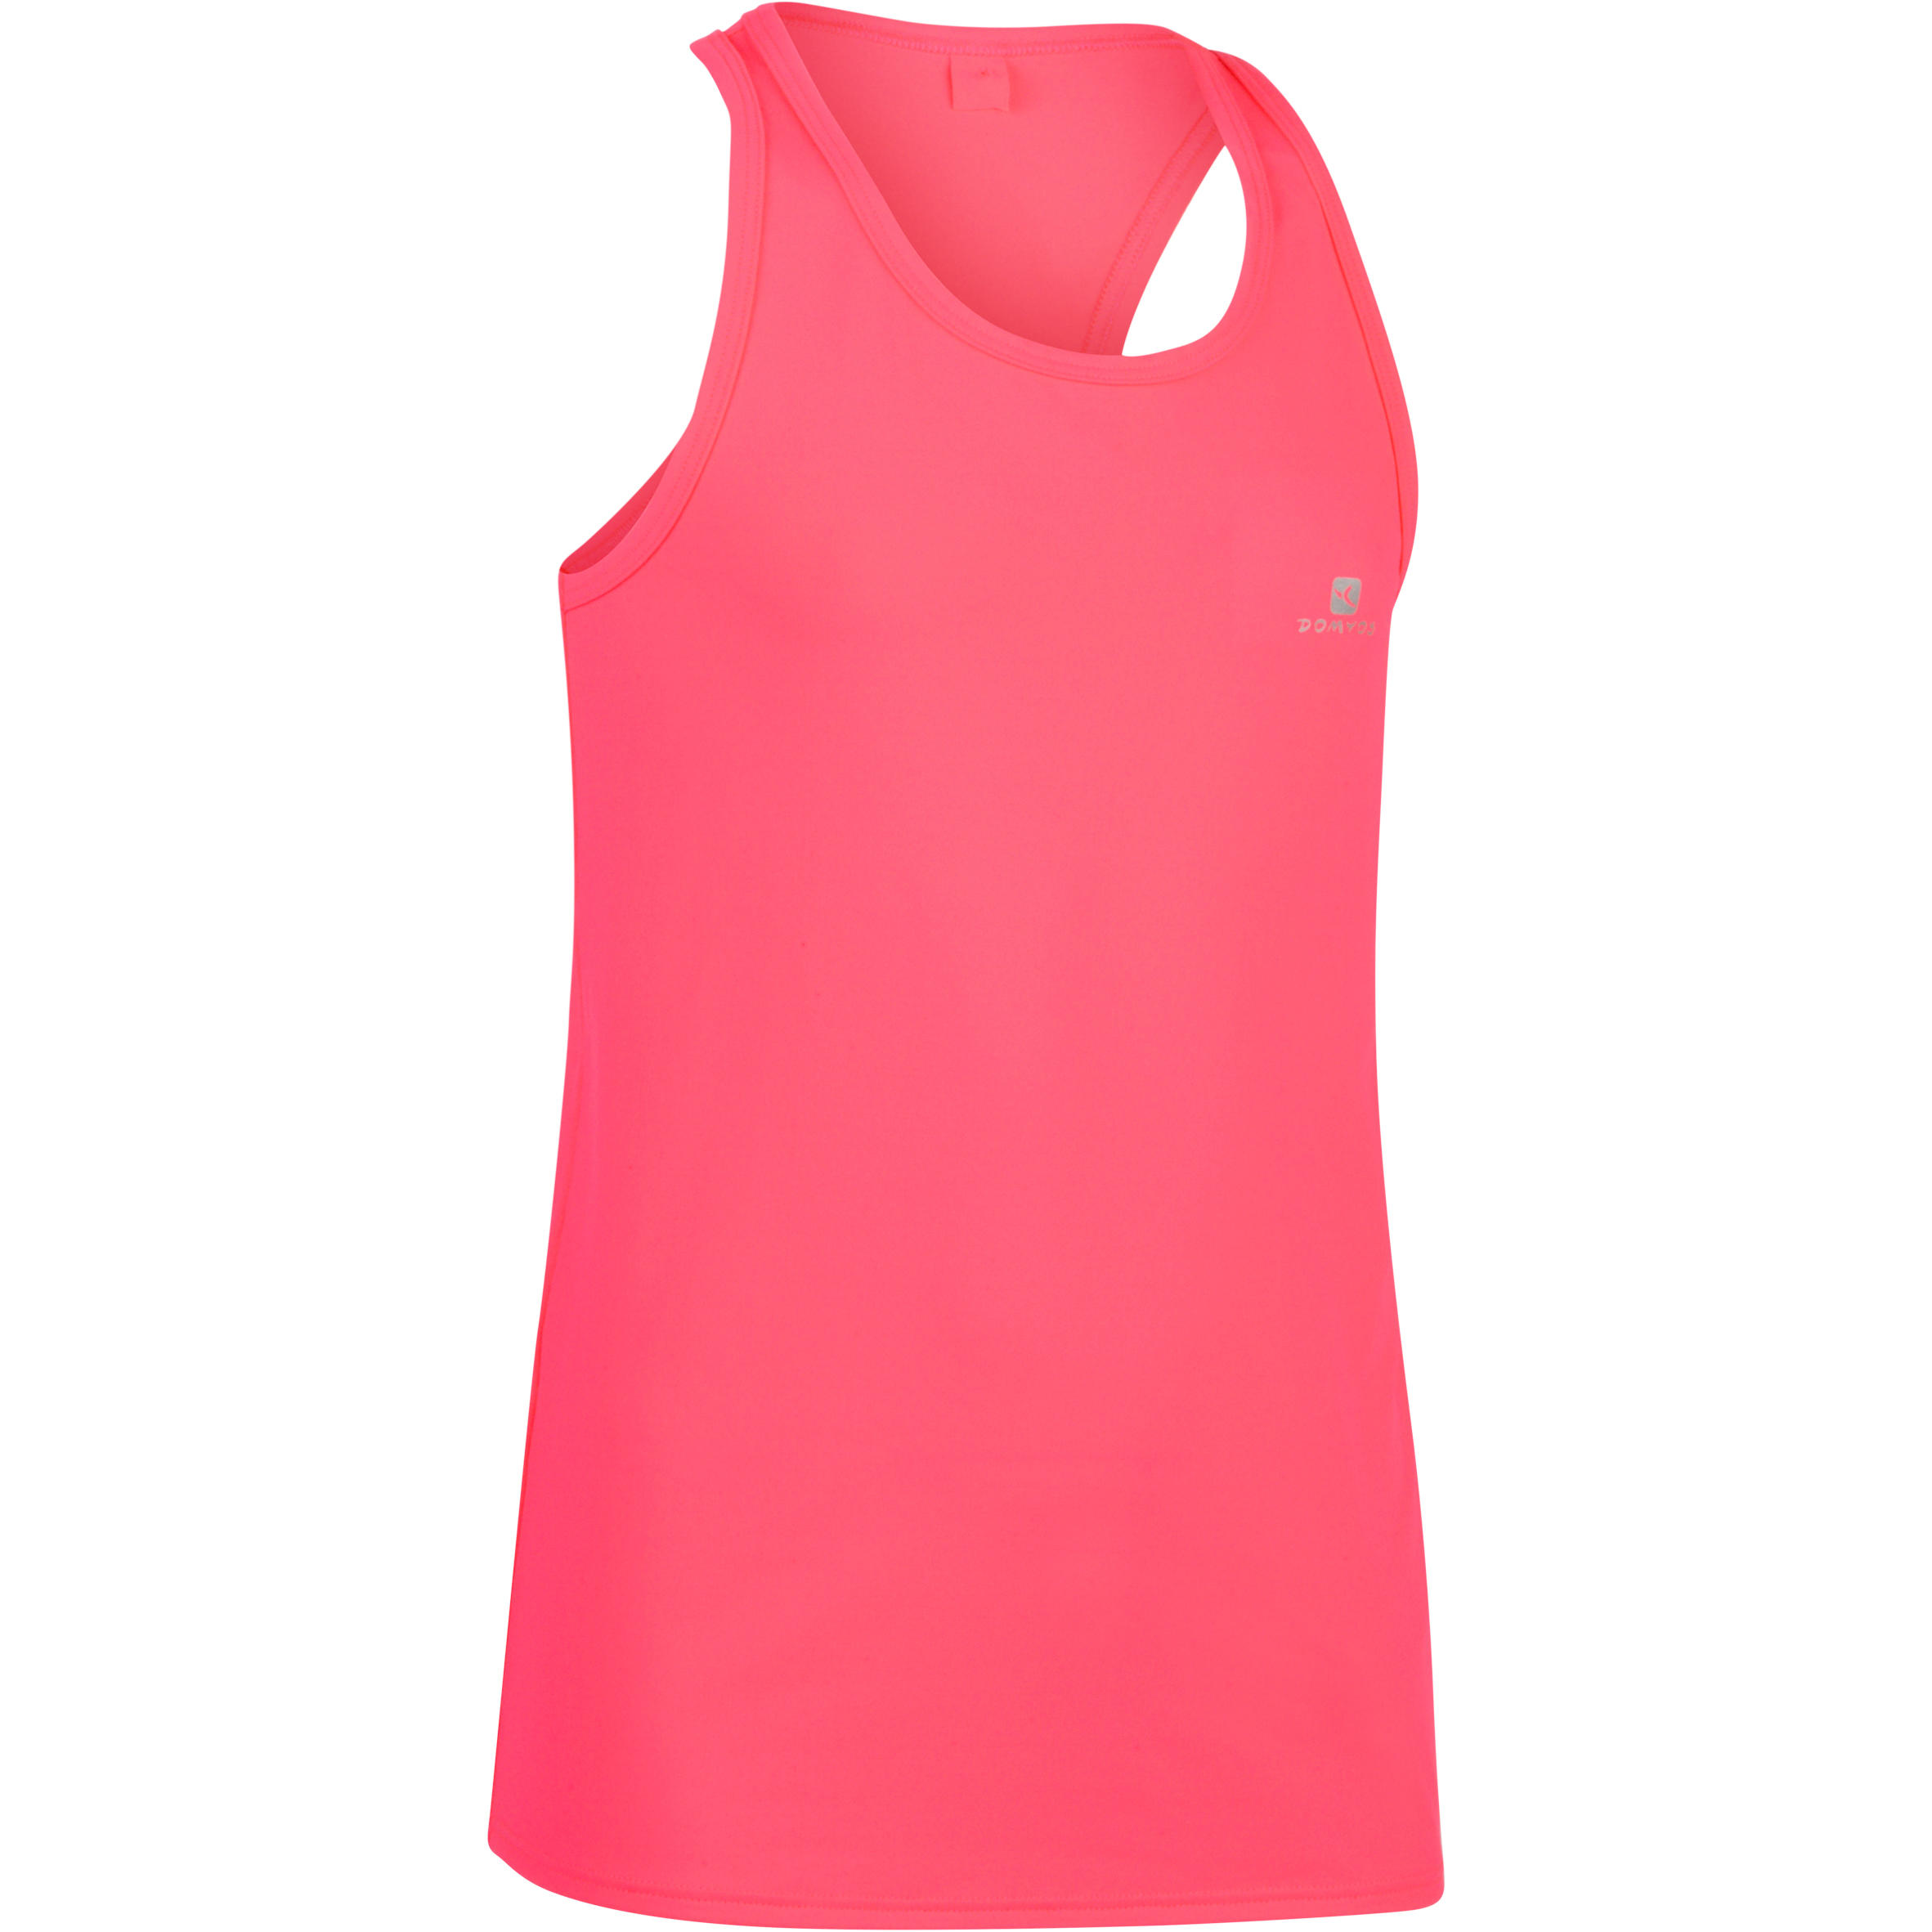 Playera sin mangas 560 gimnasia niña rosa My Little Top